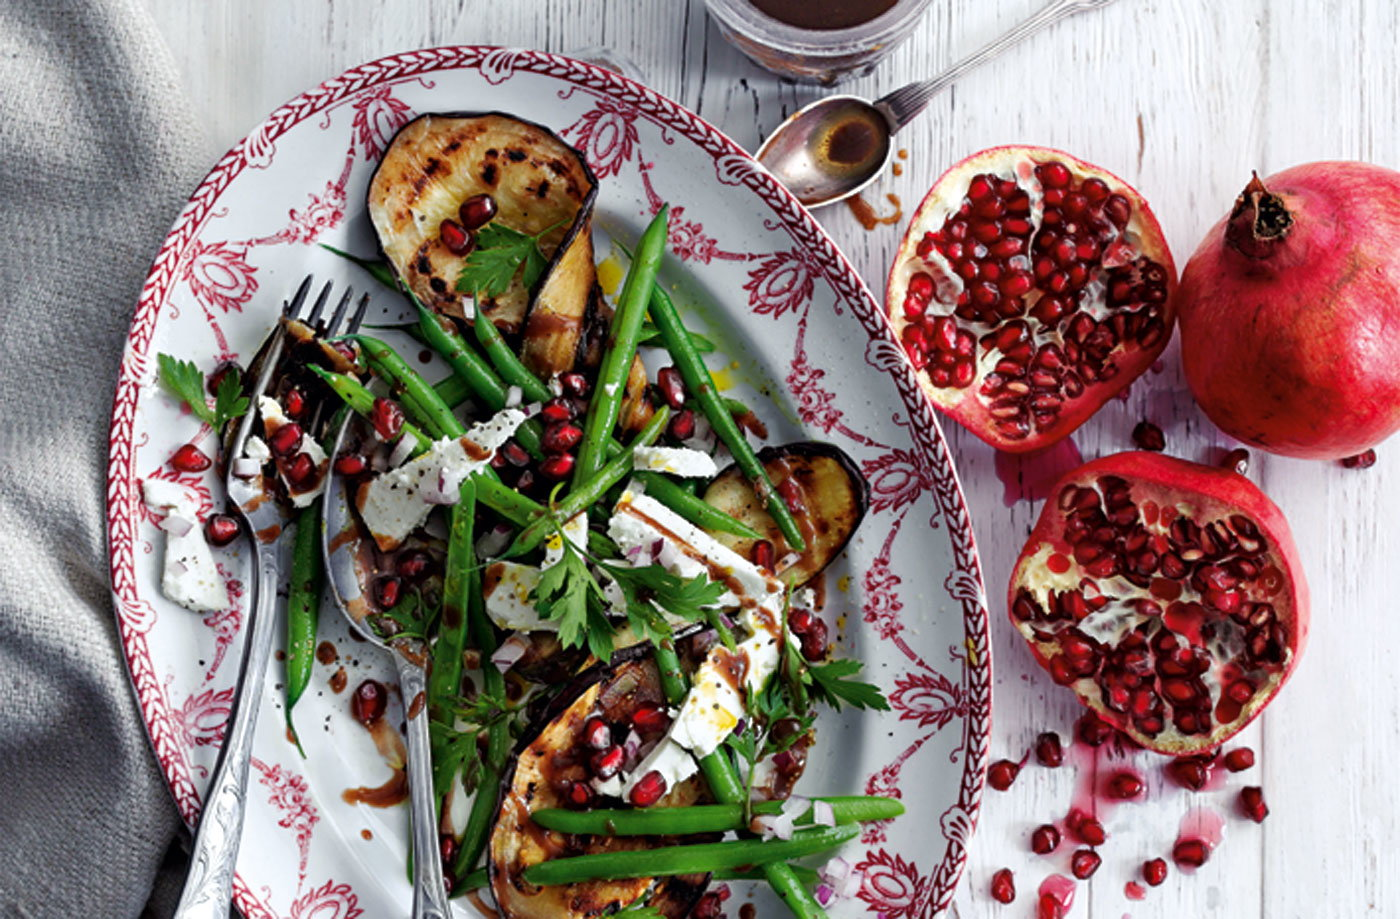 Grilled aubergines with green beans, feta and pomegranate seeds